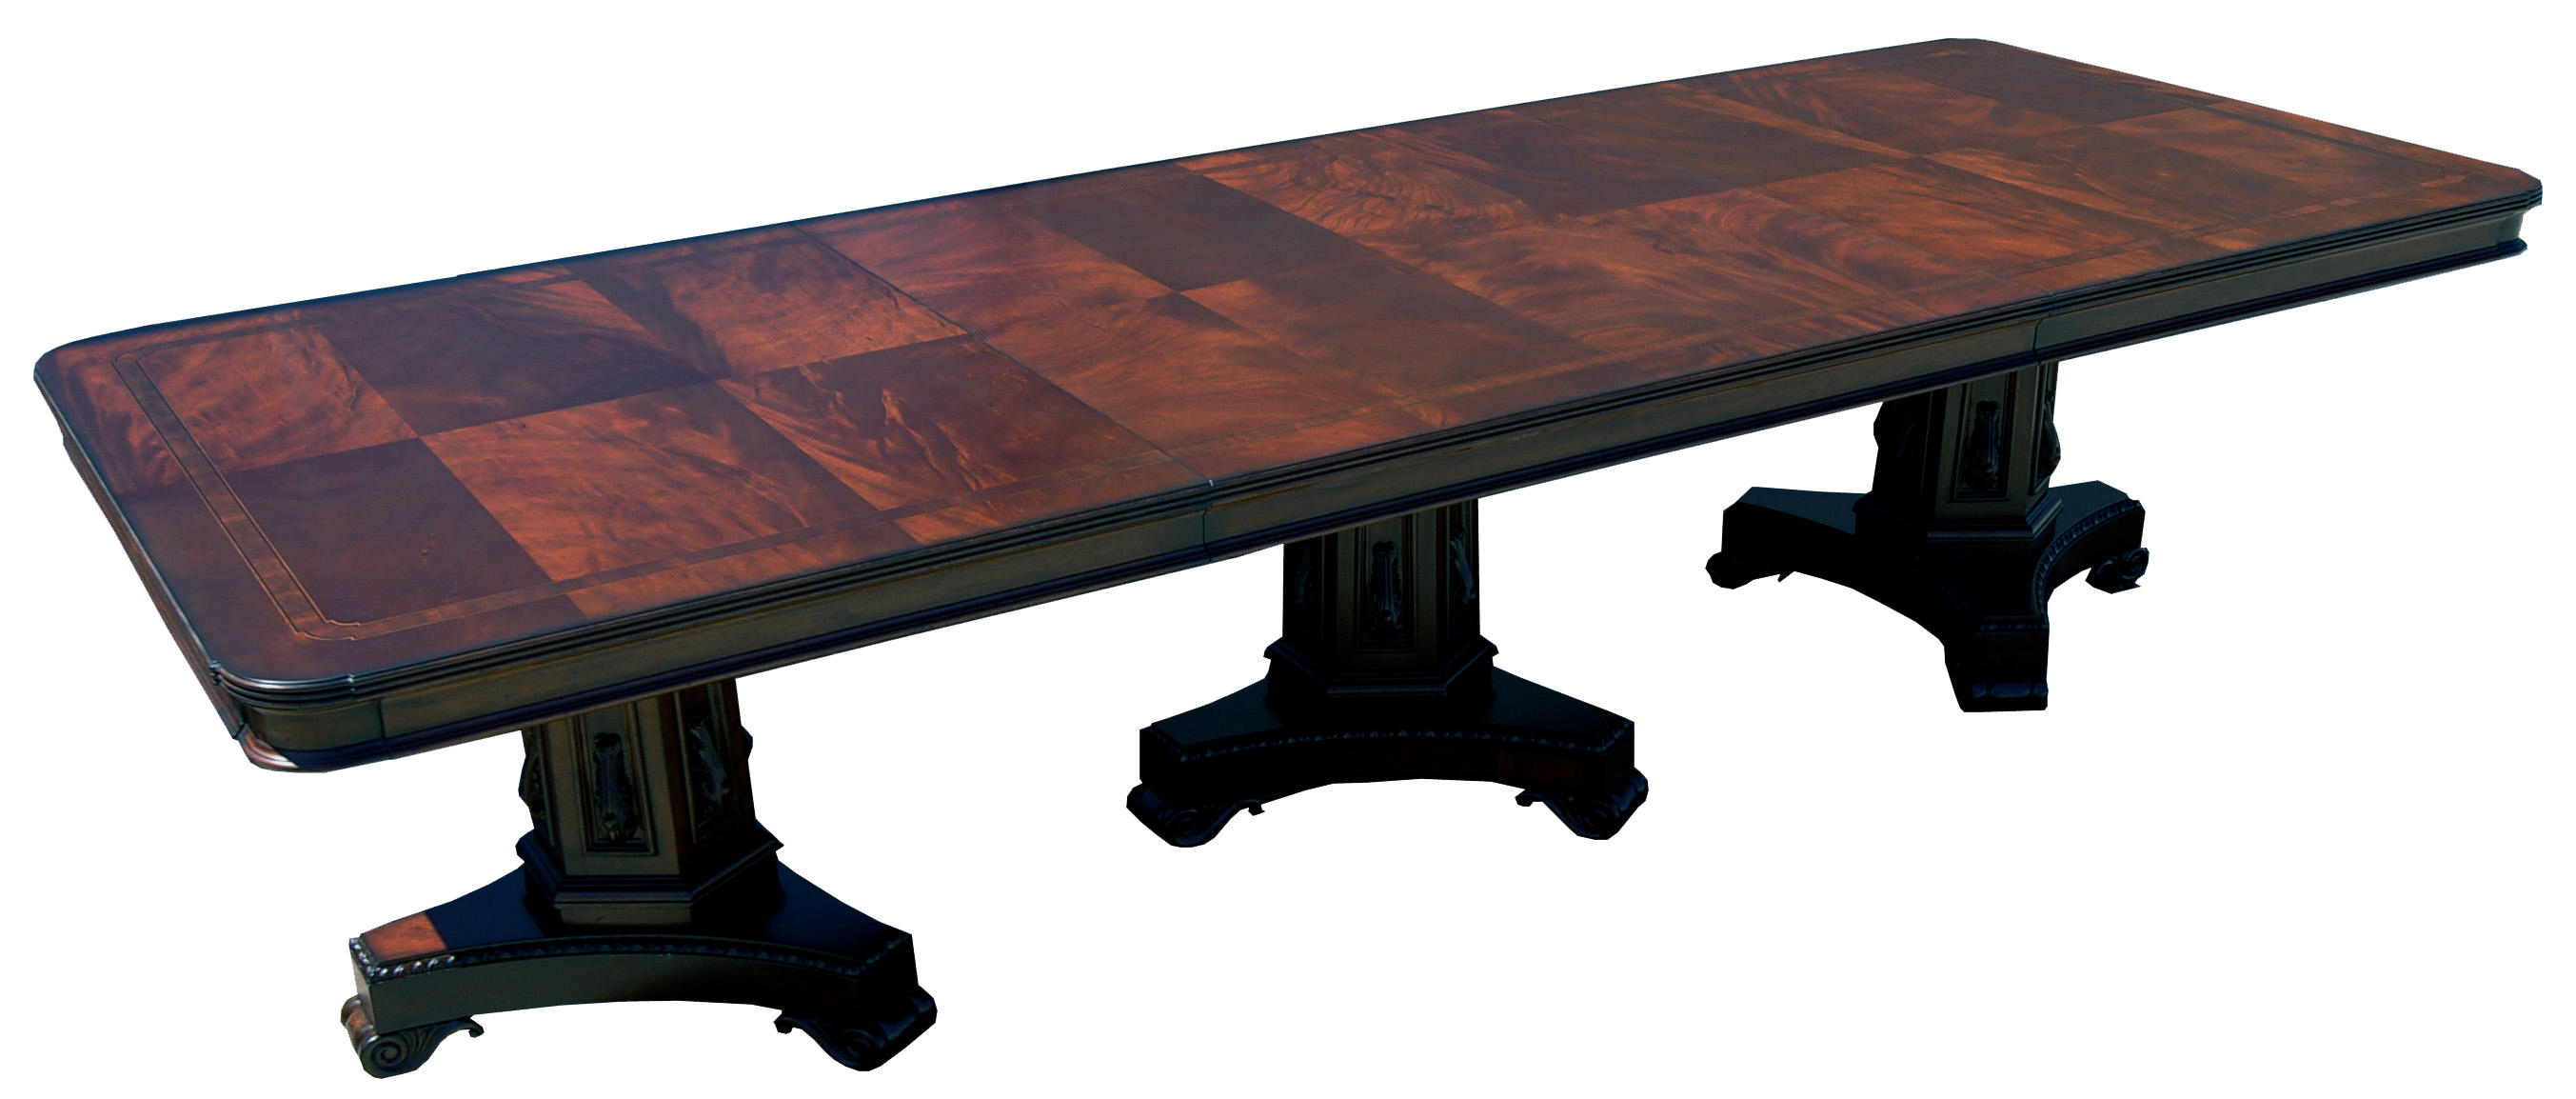 Large Mahogany Banquet Dining Conference Table eBay : fullview1exp from www.ebay.com size 2706 x 1154 jpeg 424kB